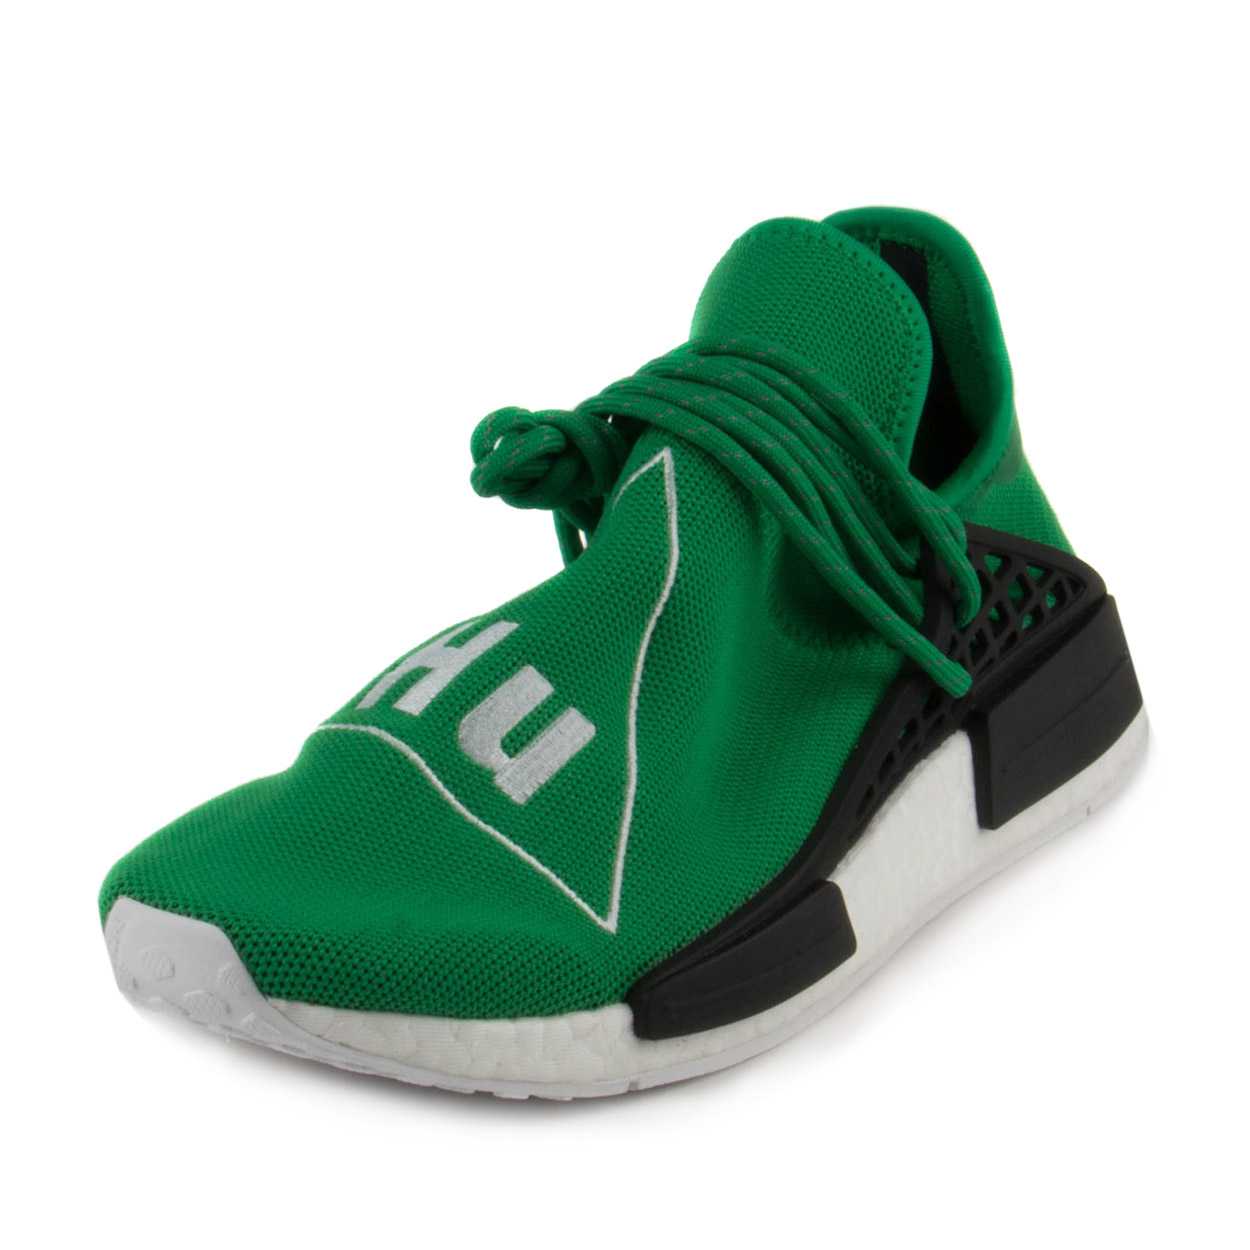 Adidas Mens PW Human Race NMD Green/White BB0620